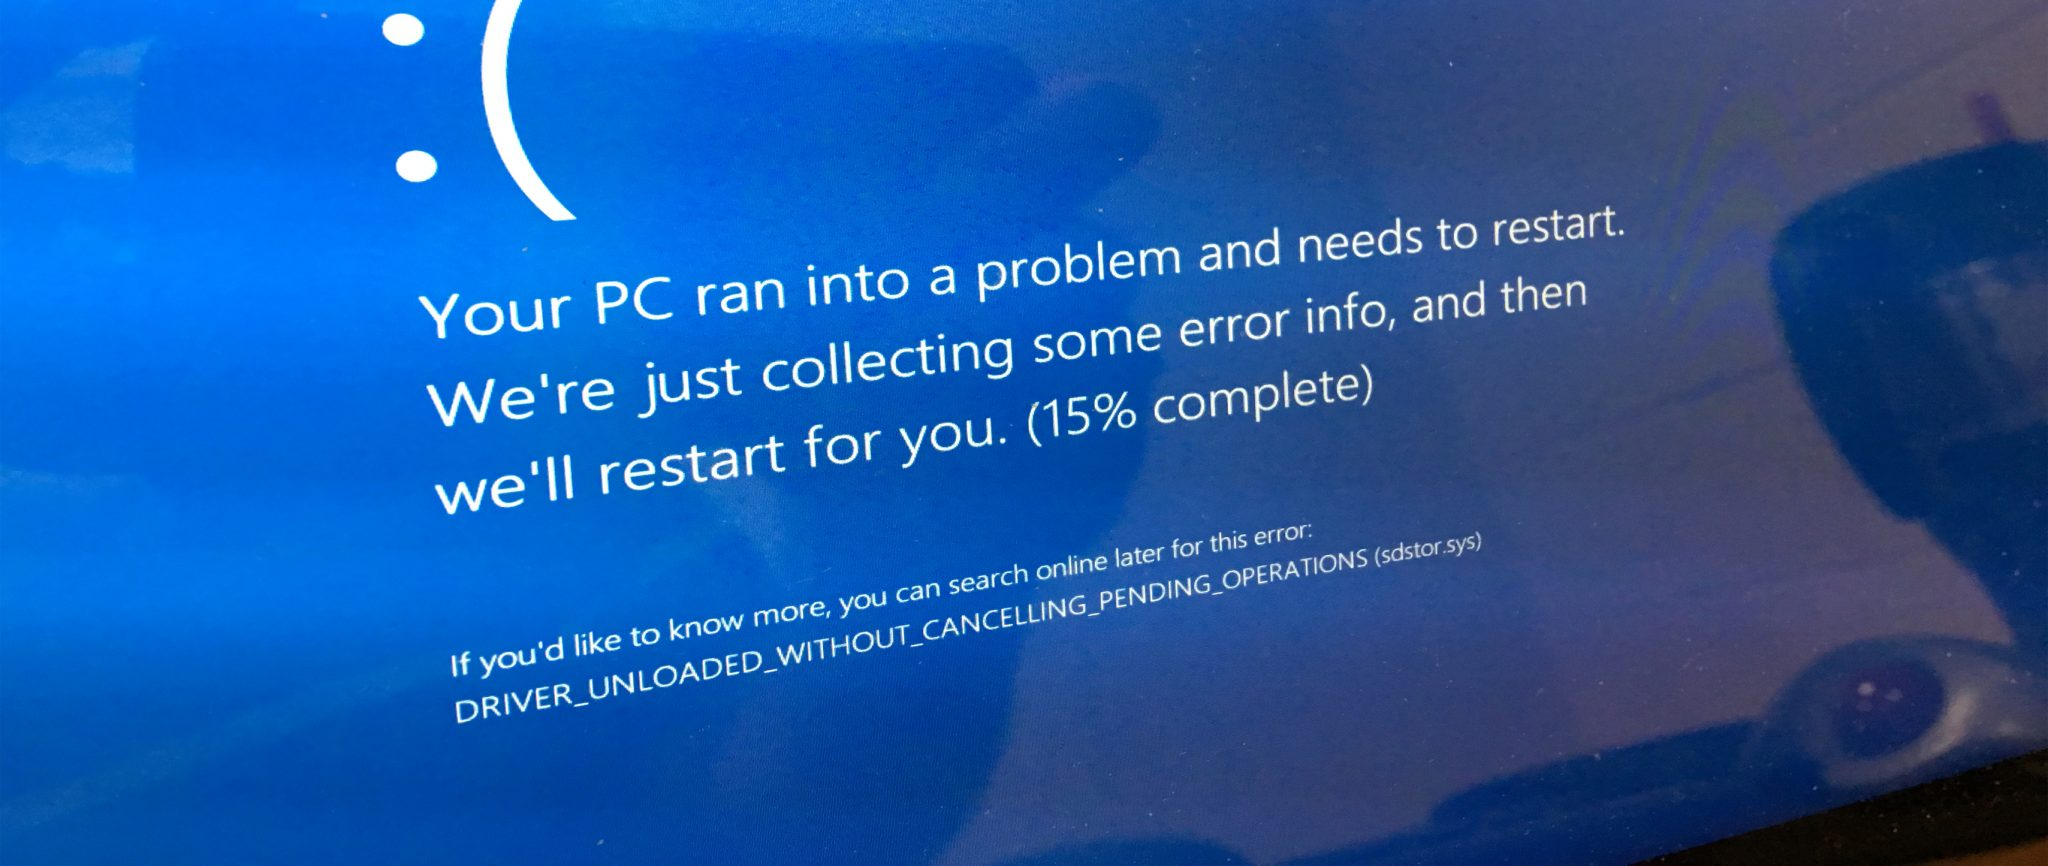 Blue Screen blues: How to fix kernel security check failure